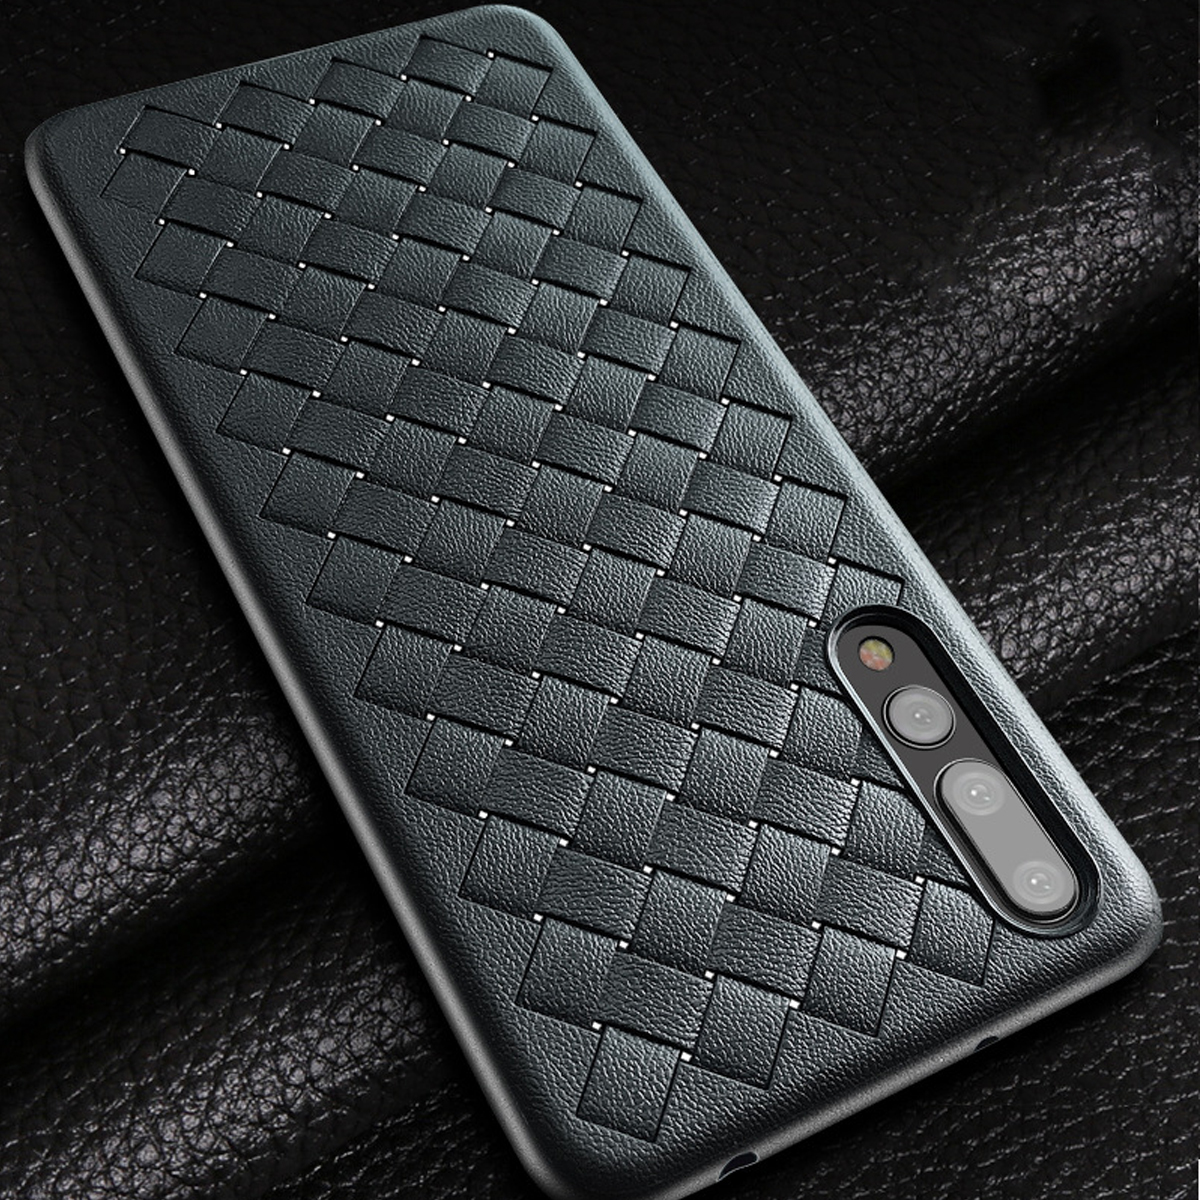 Luxury Weave Pattern Anti-Fingerprint Soft Silicone Protective Case For Huawei P20 Pro